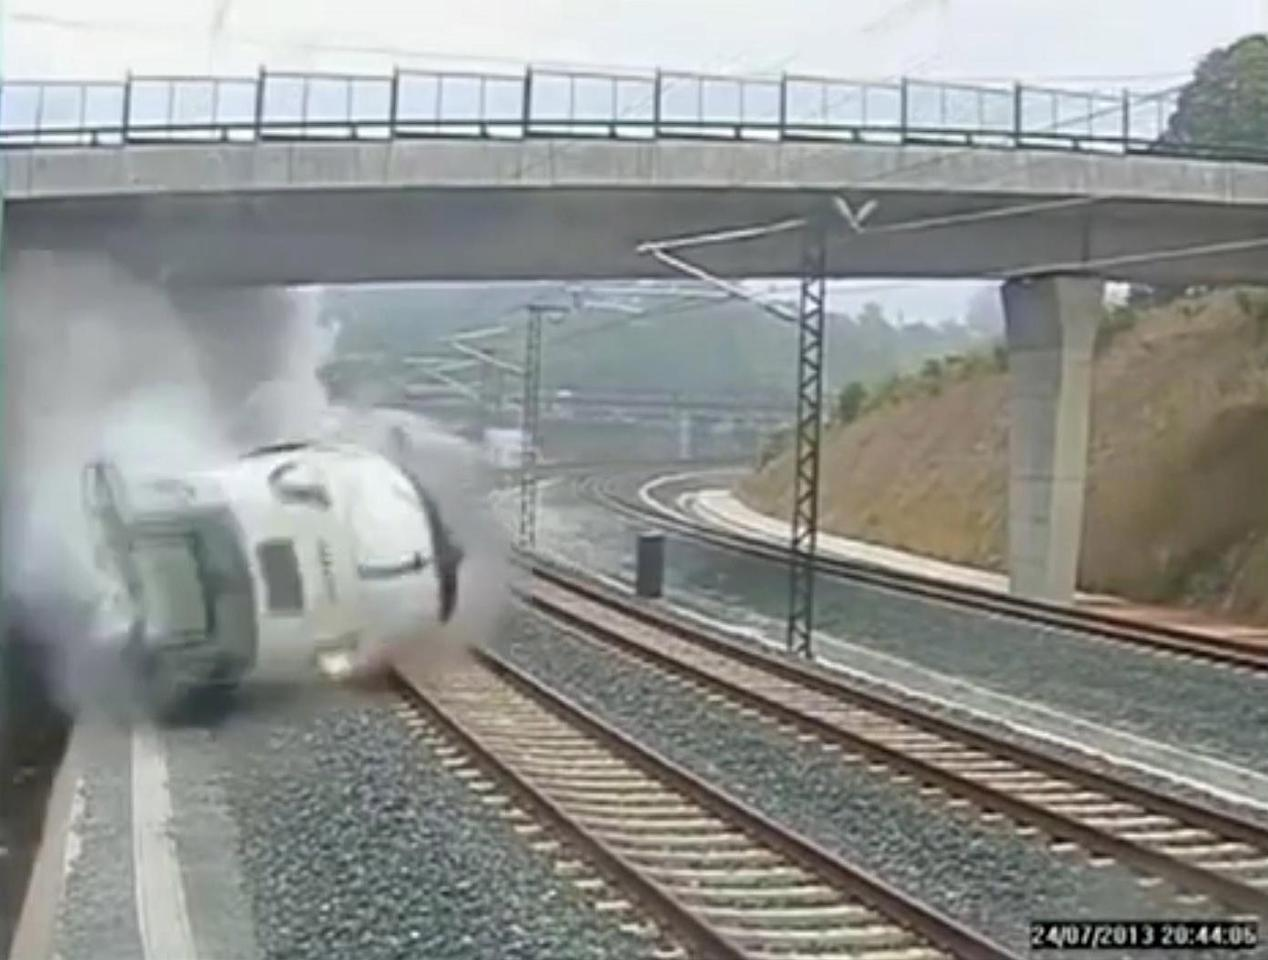 CORRECTS DATE - This image taken from security camera video shows a train derailing in Santiago de Compostela, Spain, on Wedmesday July 24, 2013. Spanish investigators tried to determine Thursday why a passenger train jumped the tracks and sent eight cars crashing into each other just before arriving in this northwestern shrine city on the eve of a major Christian religious festival, killing at least 77 people and injuring more than 140. (AP Photo)